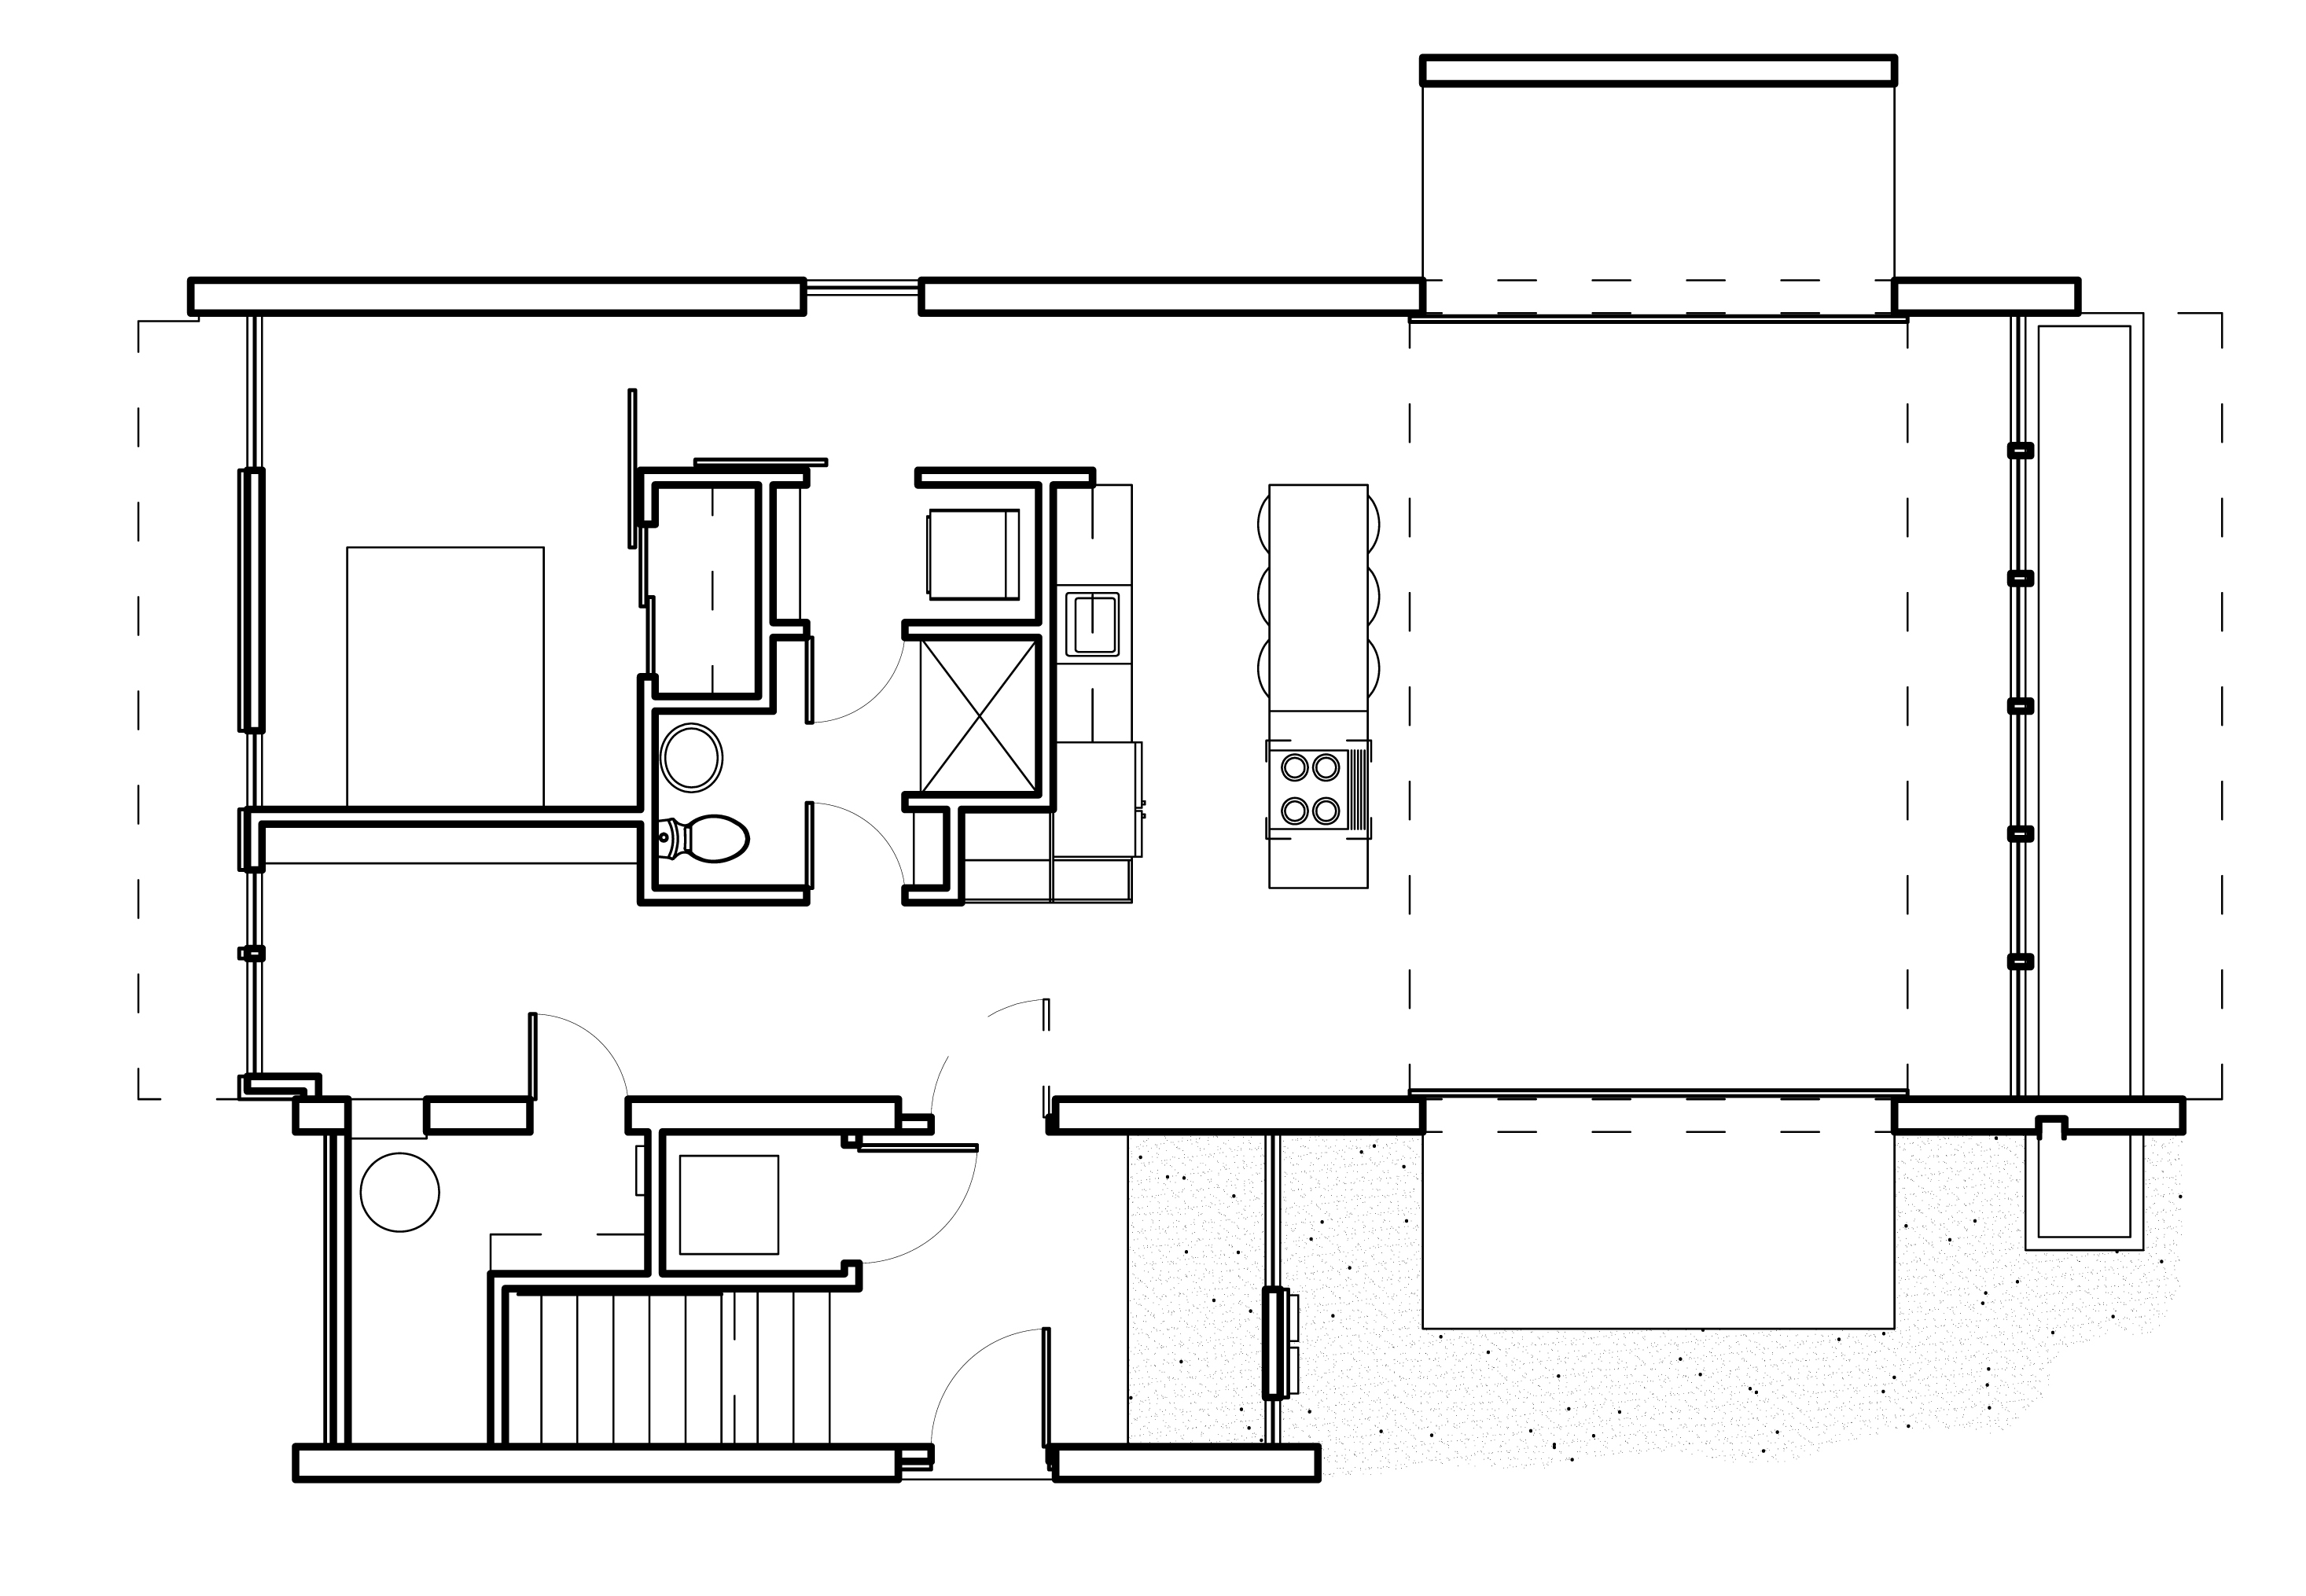 Modern house plans contemporary home designs floor plan 02 for Modern contemporary house plans for sale